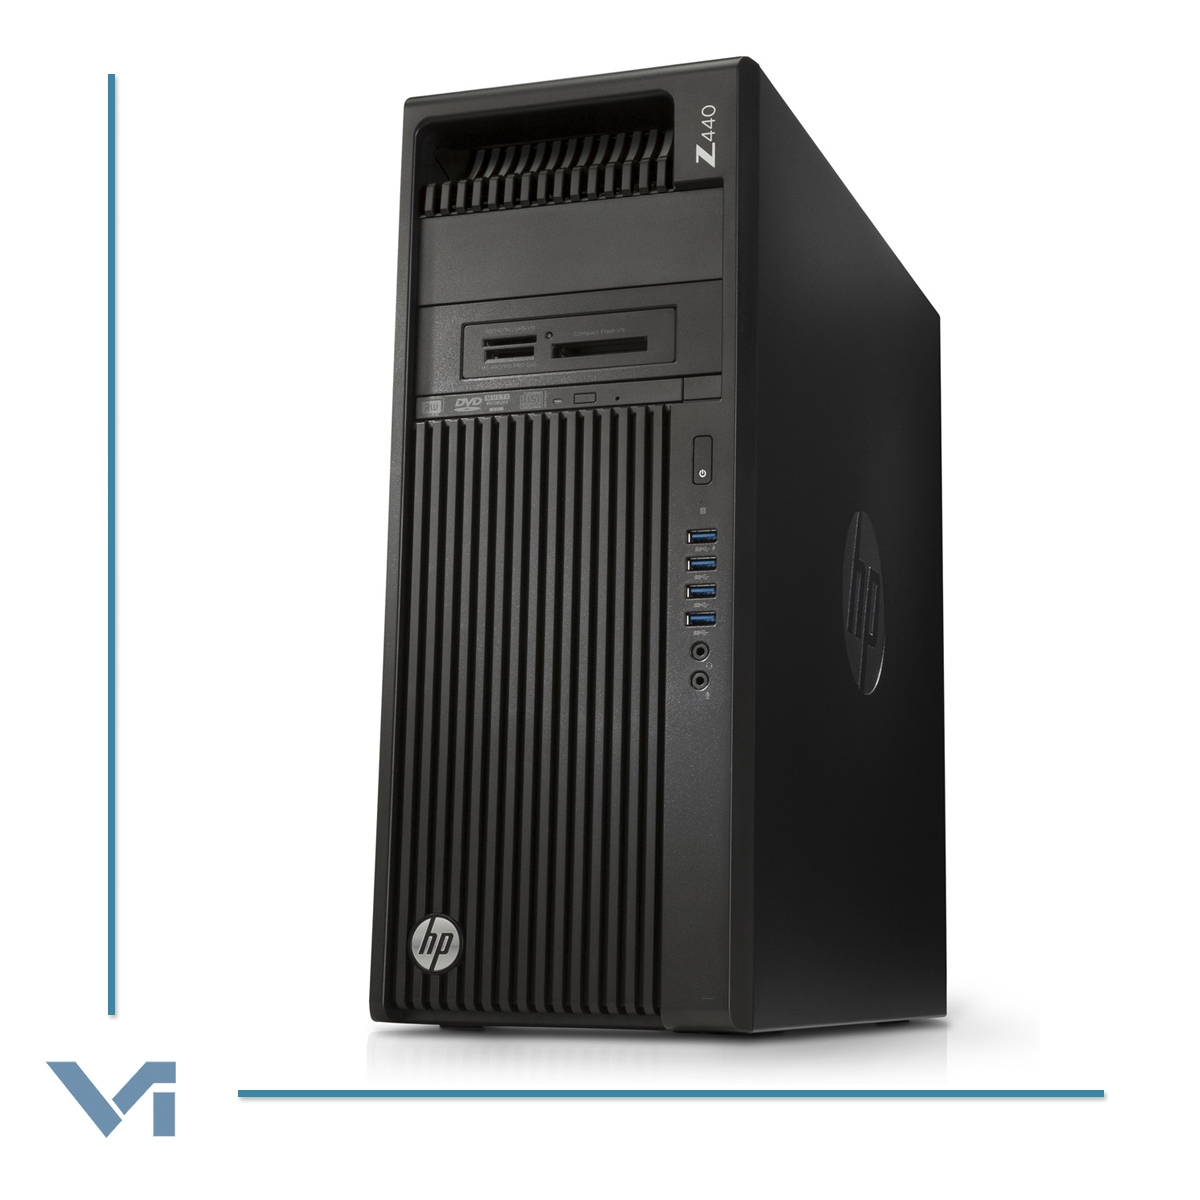 WORKSTATION HP Z440 T4K79ET TOWER - Intel Xeon E5-1620 v4 16 GB DDR4 256 GB  NVME SSD + 1TB SATA NVIDIA QUADRO M2000  DVD/RW Windows 10 Professional -NOCOLOR- Ricondizionato